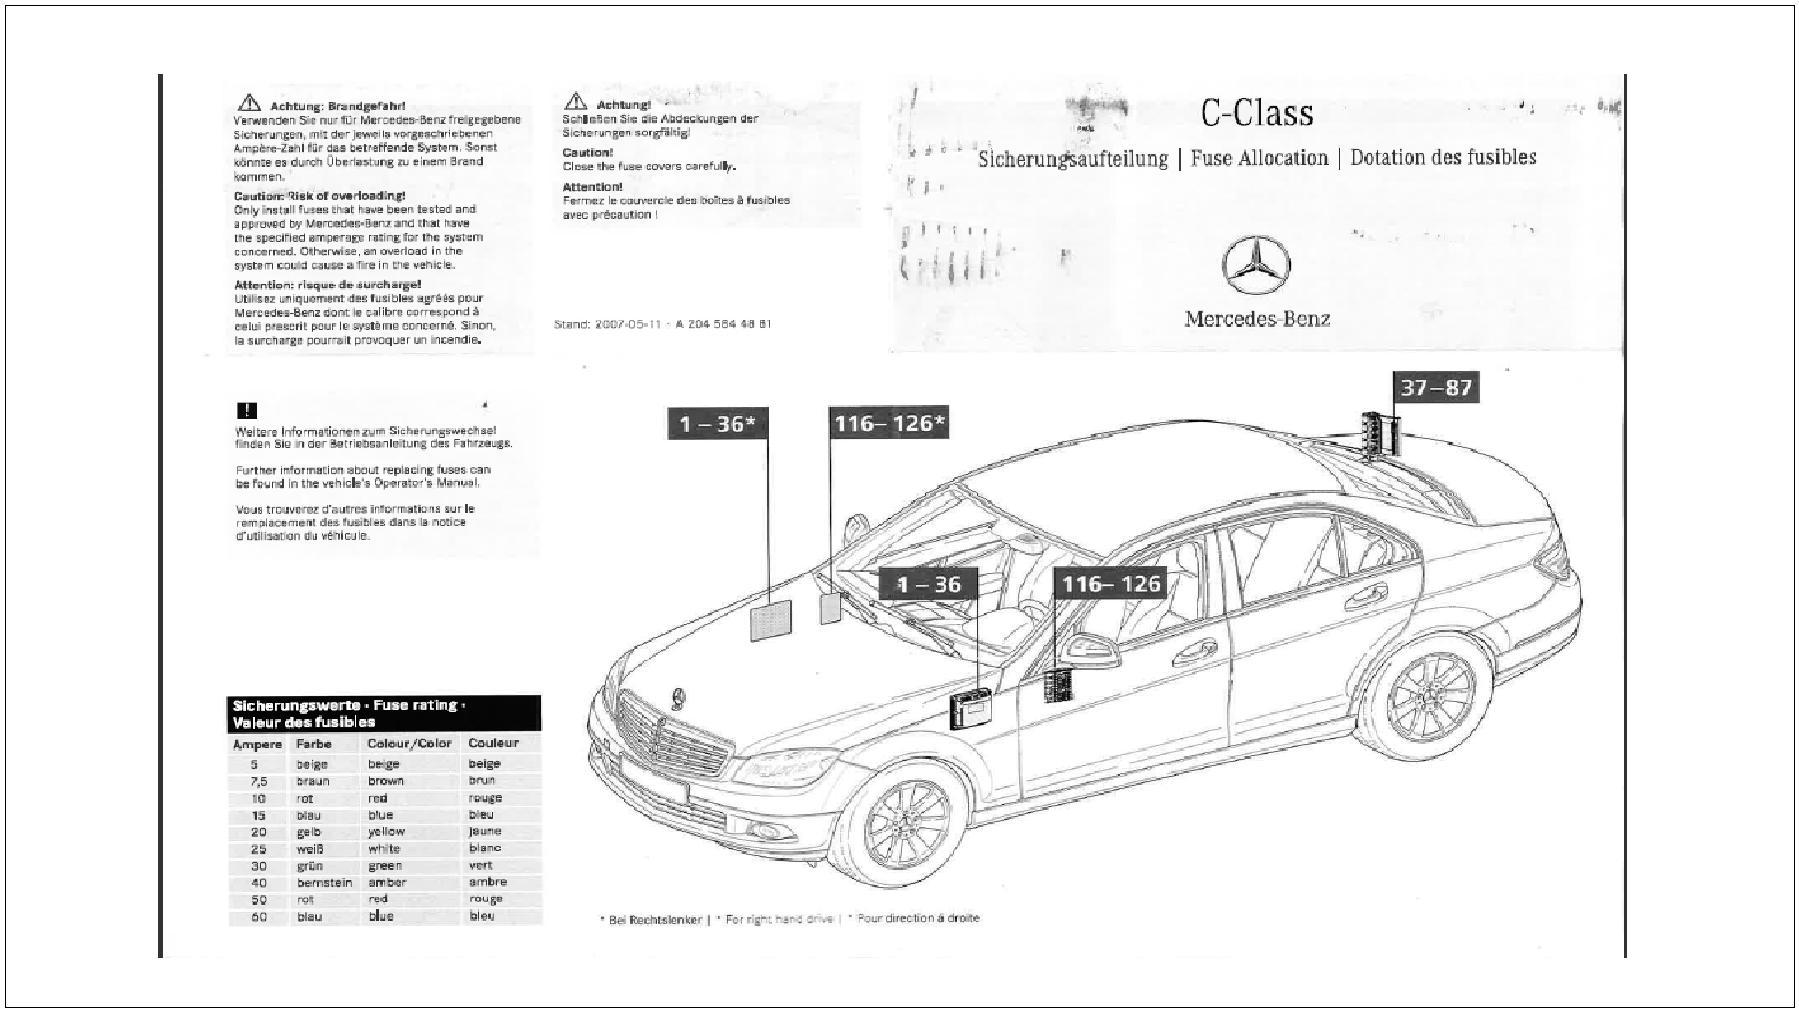 FuseAllocation1 65527 mercedes benz c class w204 fuse diagrams and commonly blown fuses mercedes w204 fuse box location at crackthecode.co